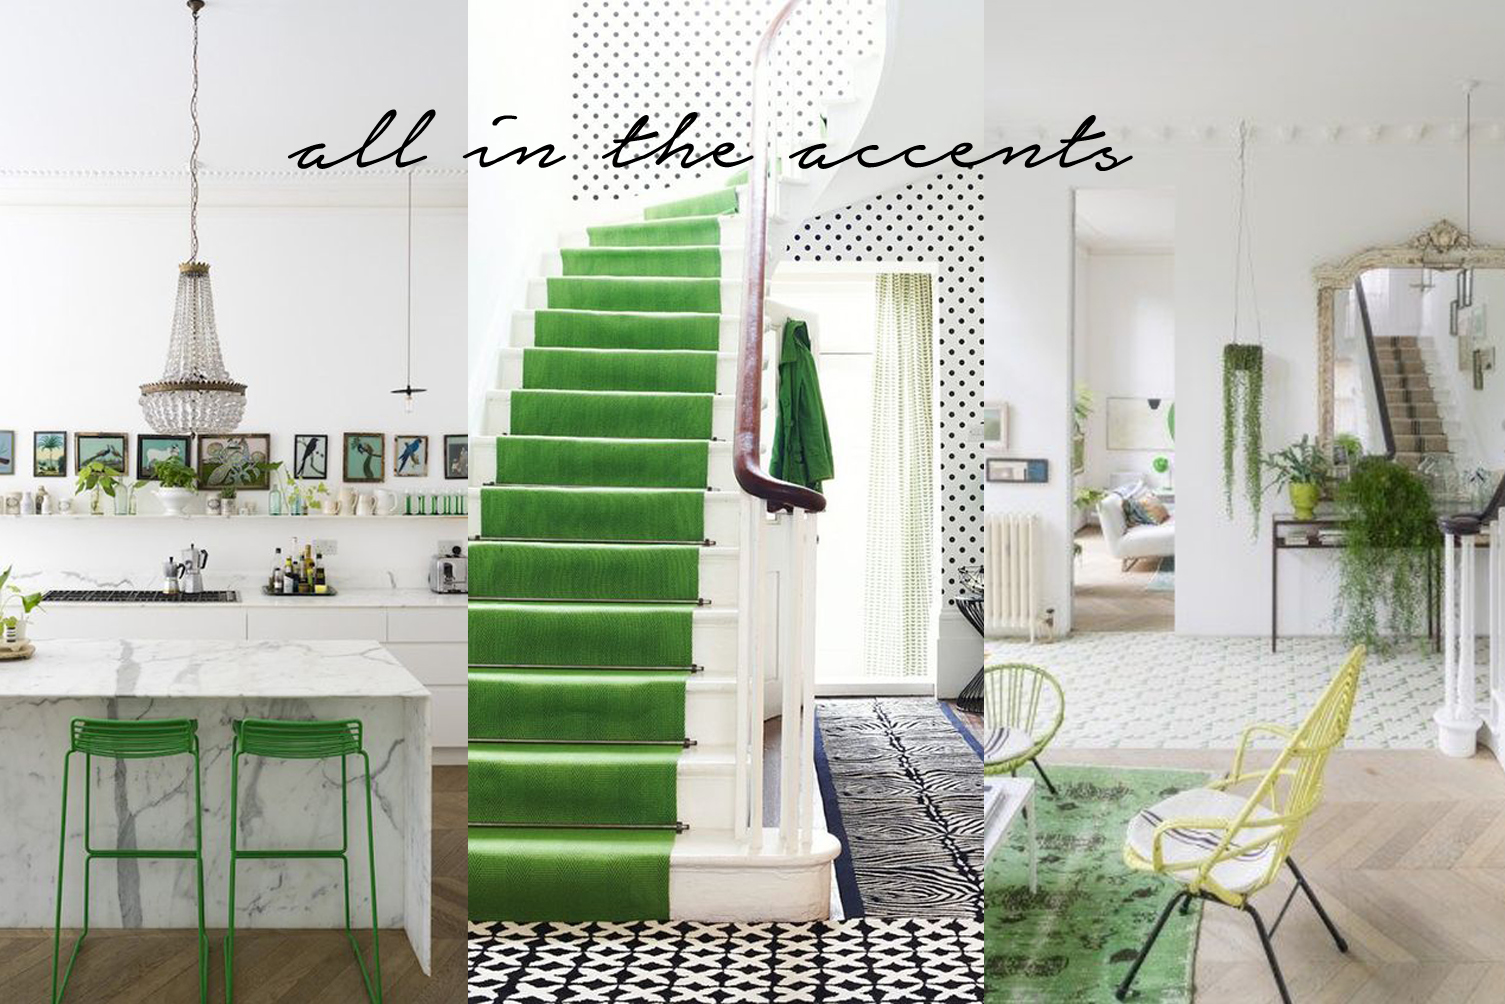 pantone greenery accent pieces for home decor inspiration